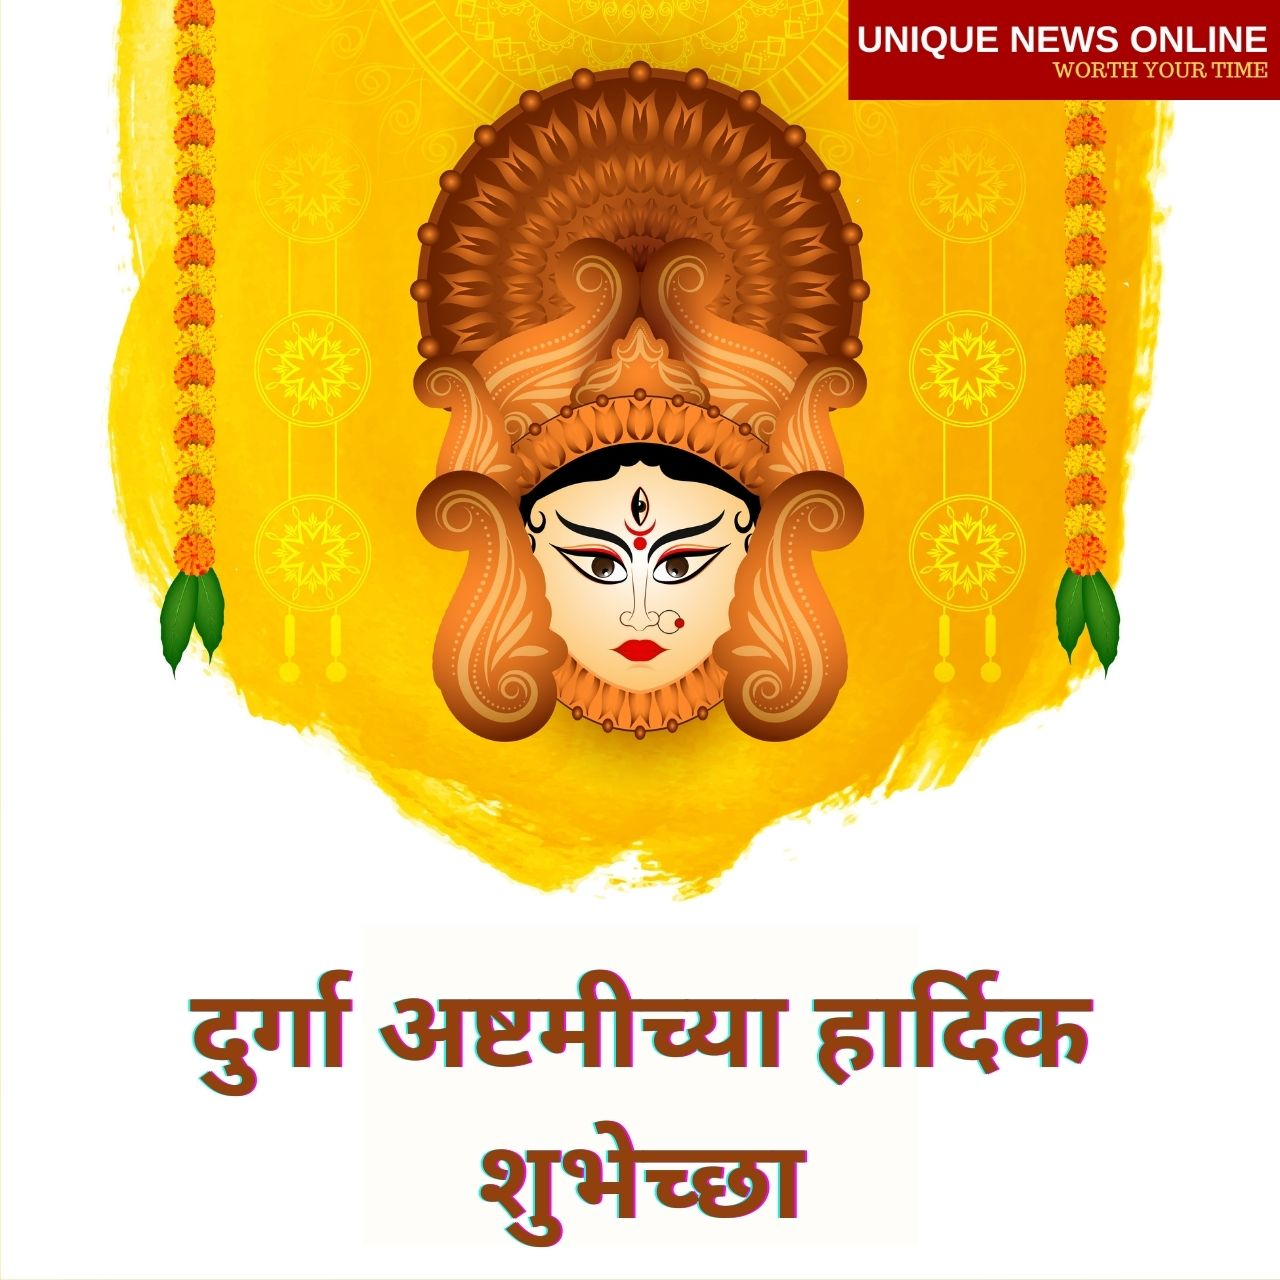 Happy Durga Ashtami 2021 Wishes in Marathi Messages, Greetings, Quotes, and Greetings